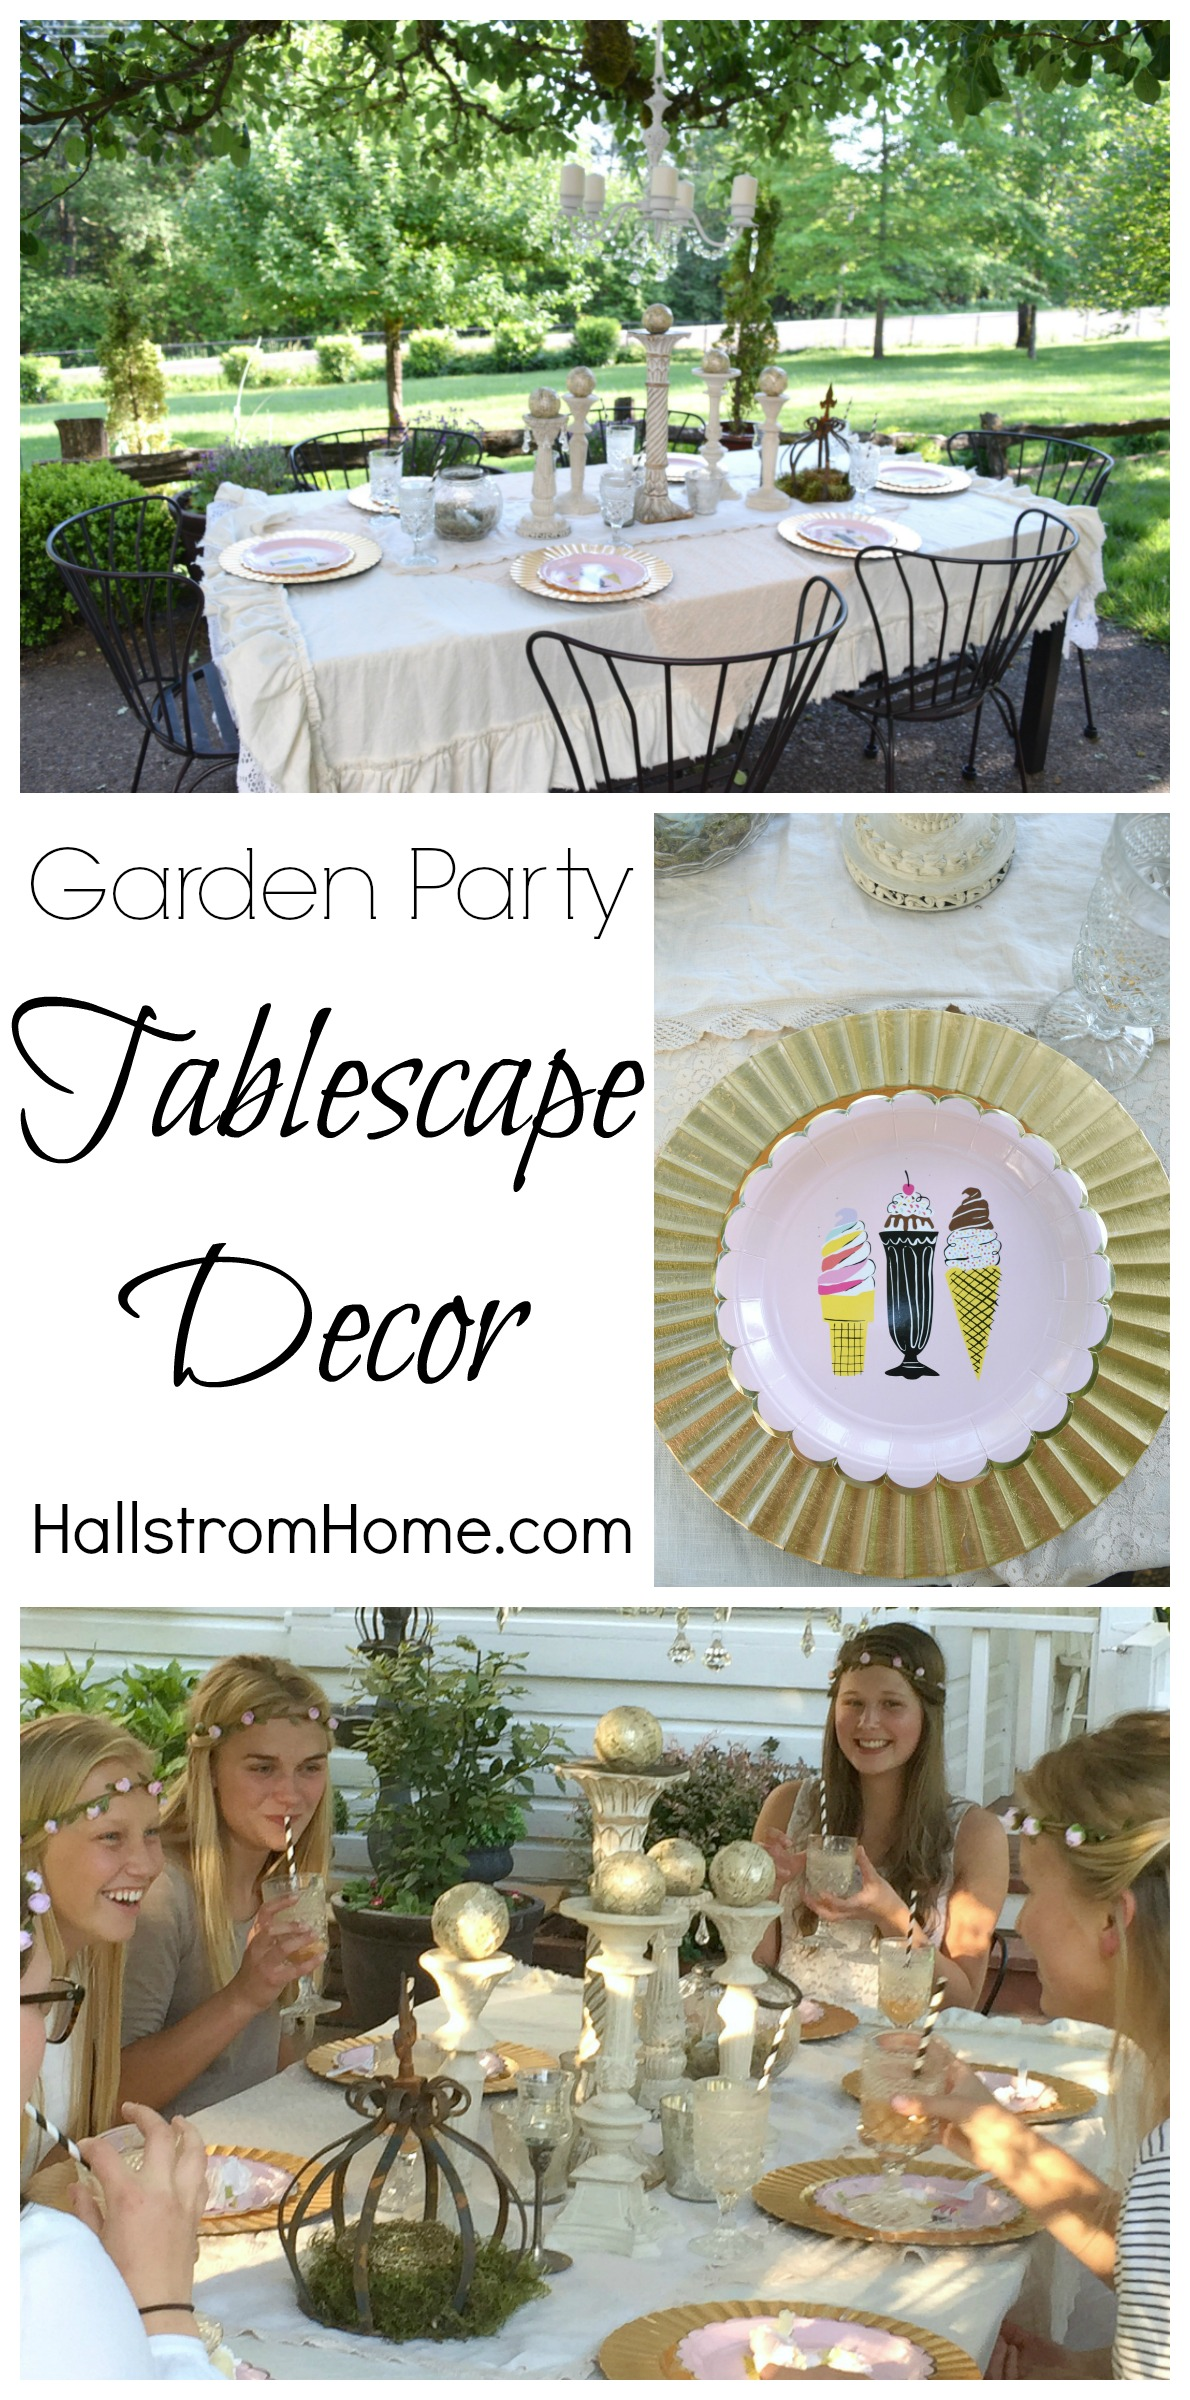 Hallstrom Home's Garden Party Tablescape Decor